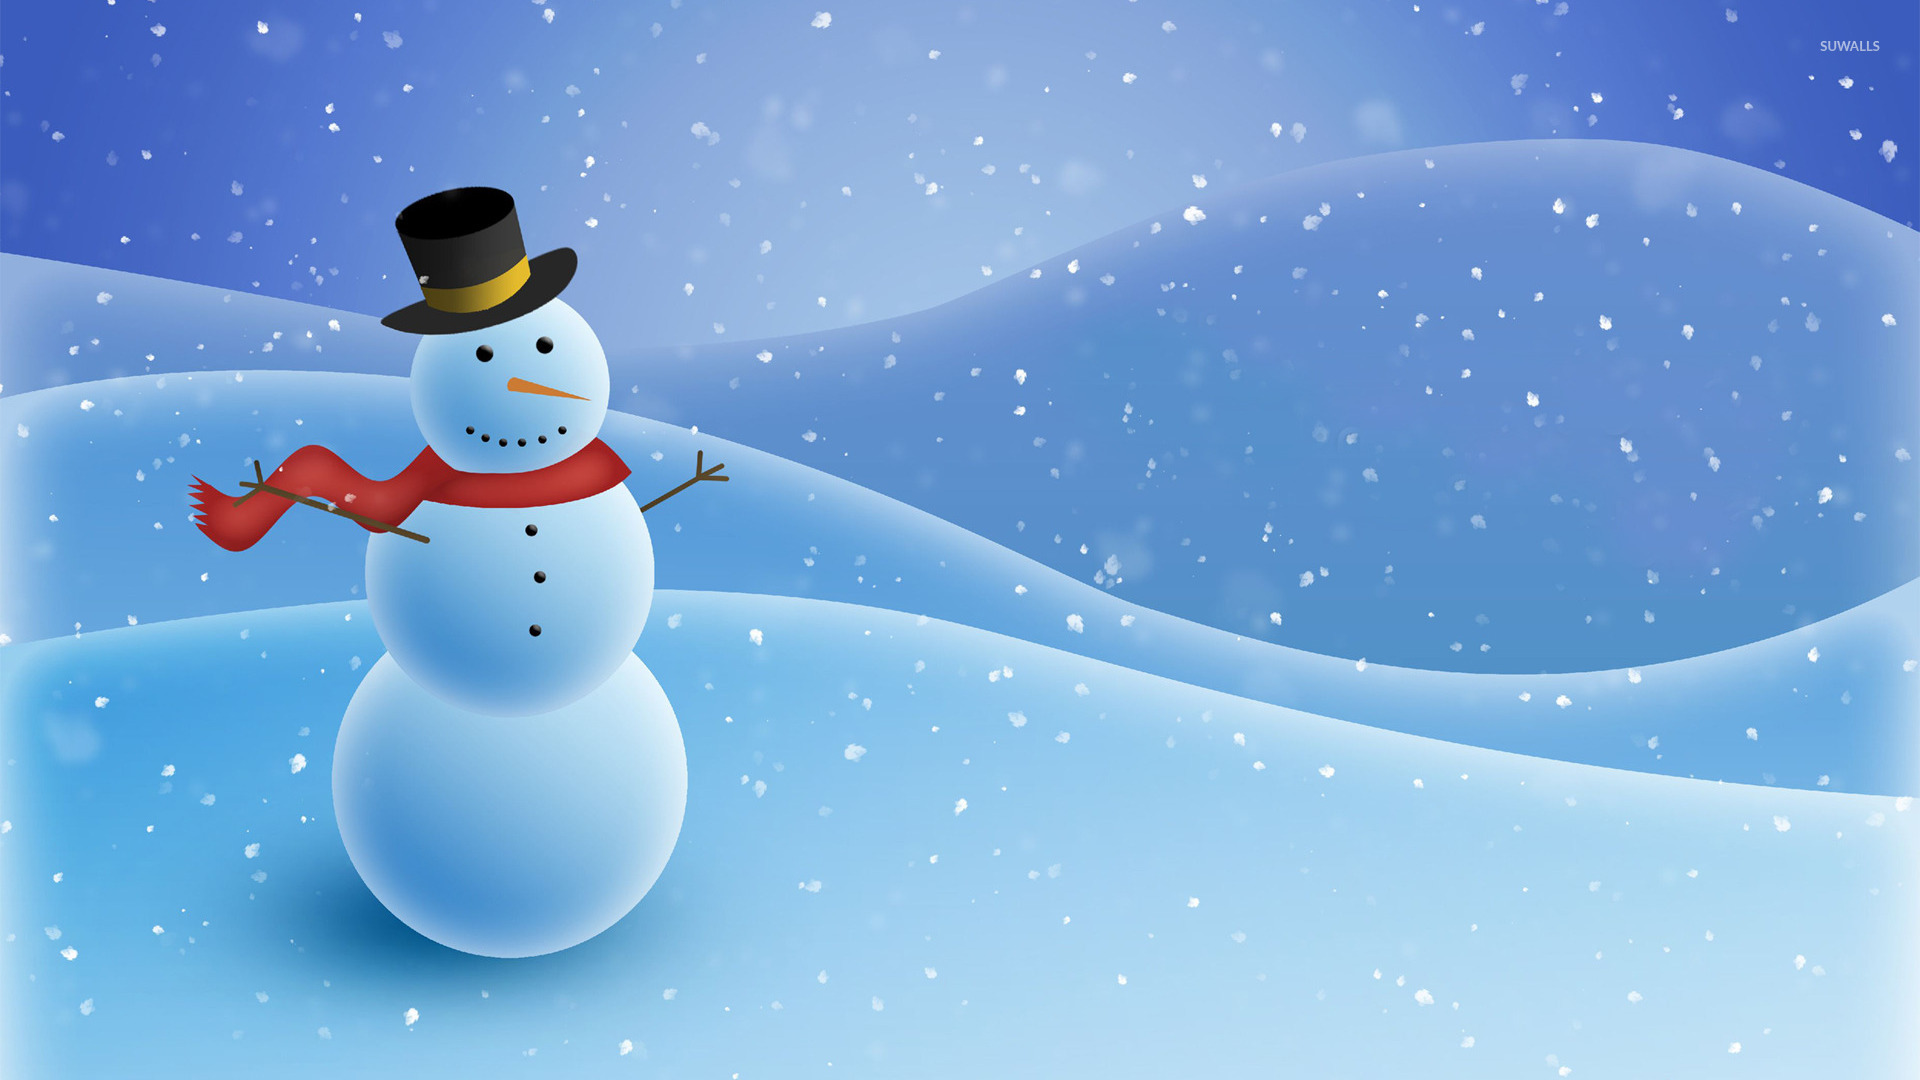 Snowman [3] wallpaper   Holiday wallpapers   23584 1920x1080